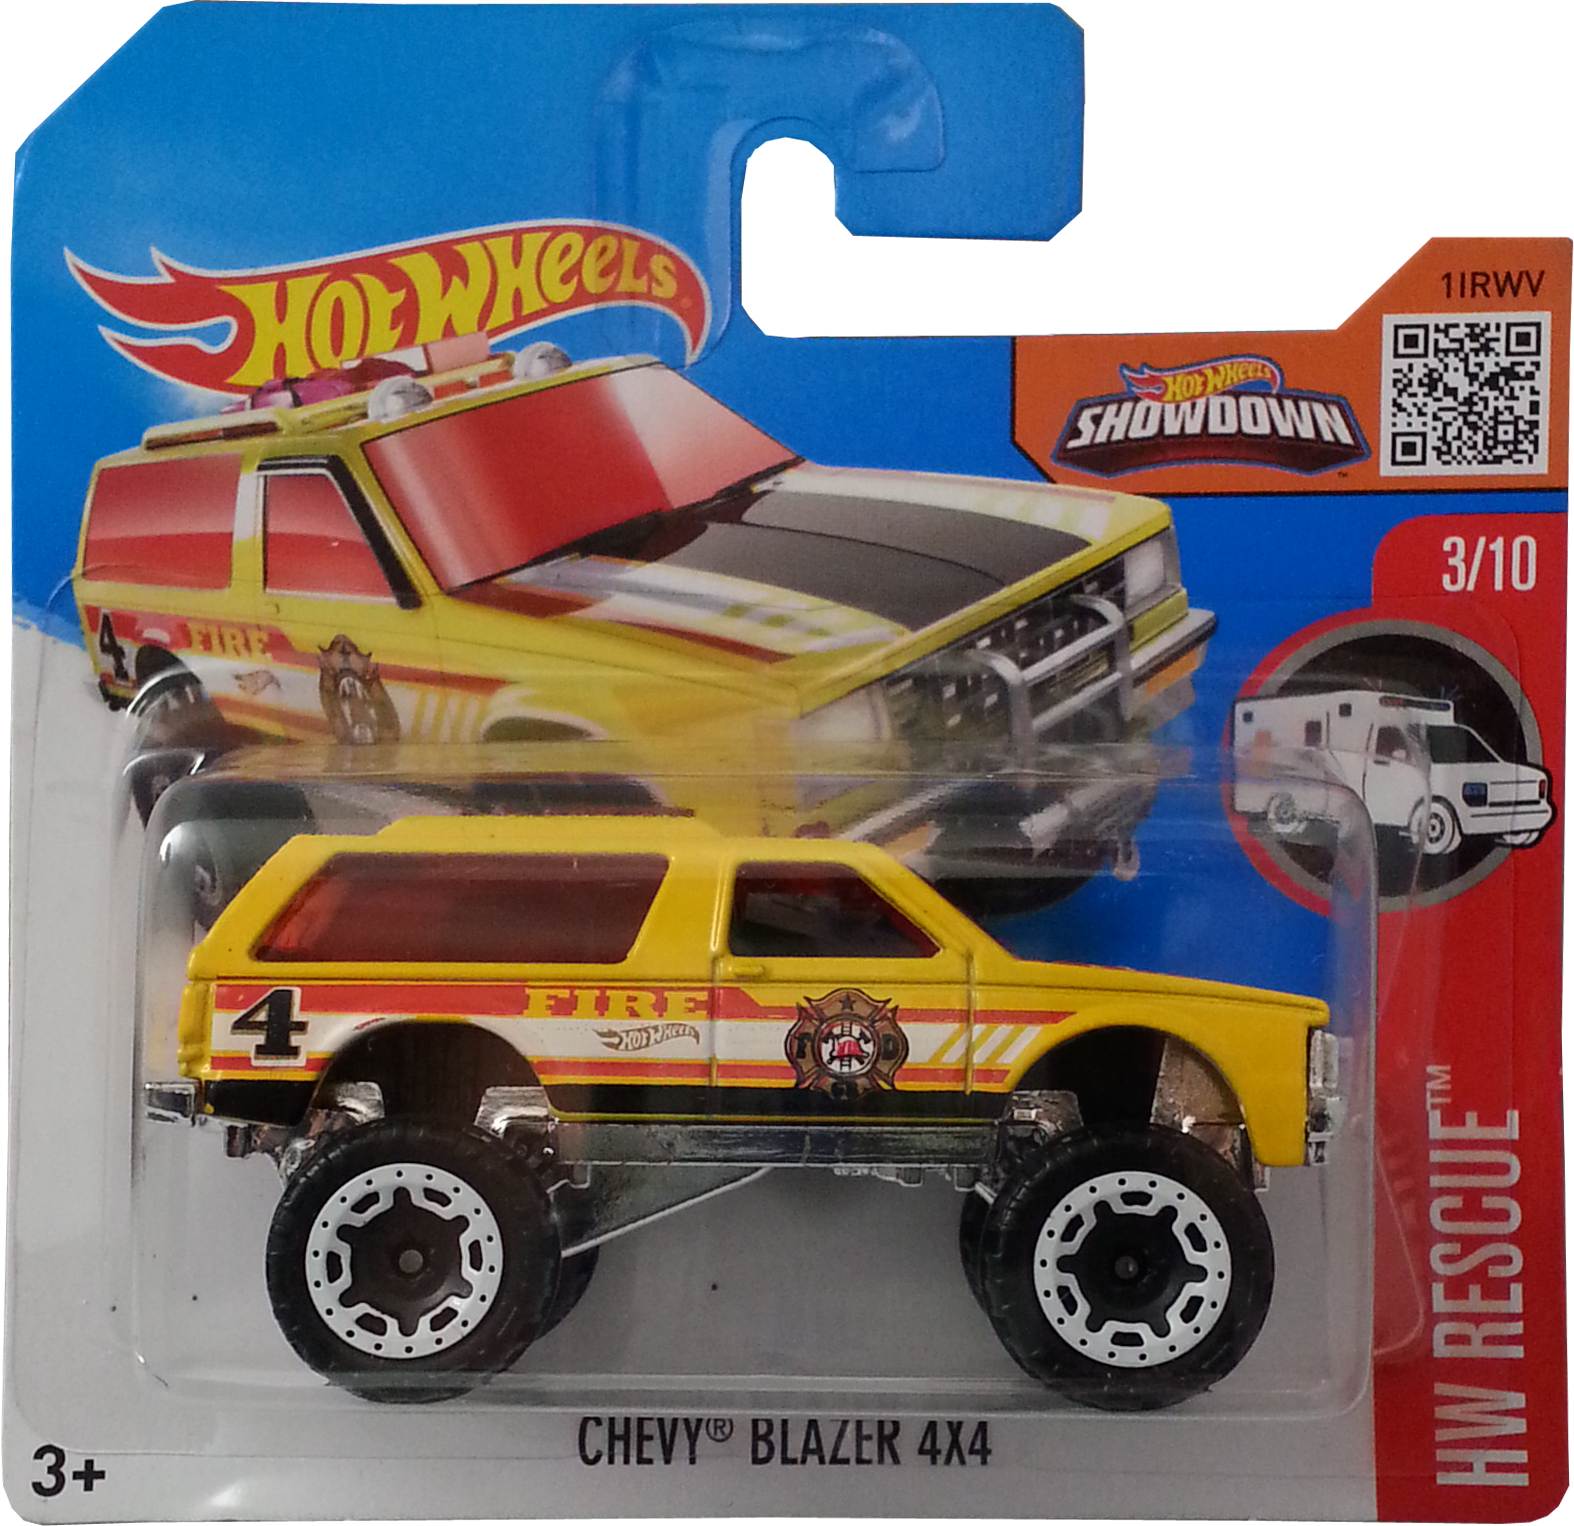 Image chevy blazer 4x4 package frontg hot wheels wiki chevy blazer 4x4 package frontg sciox Gallery